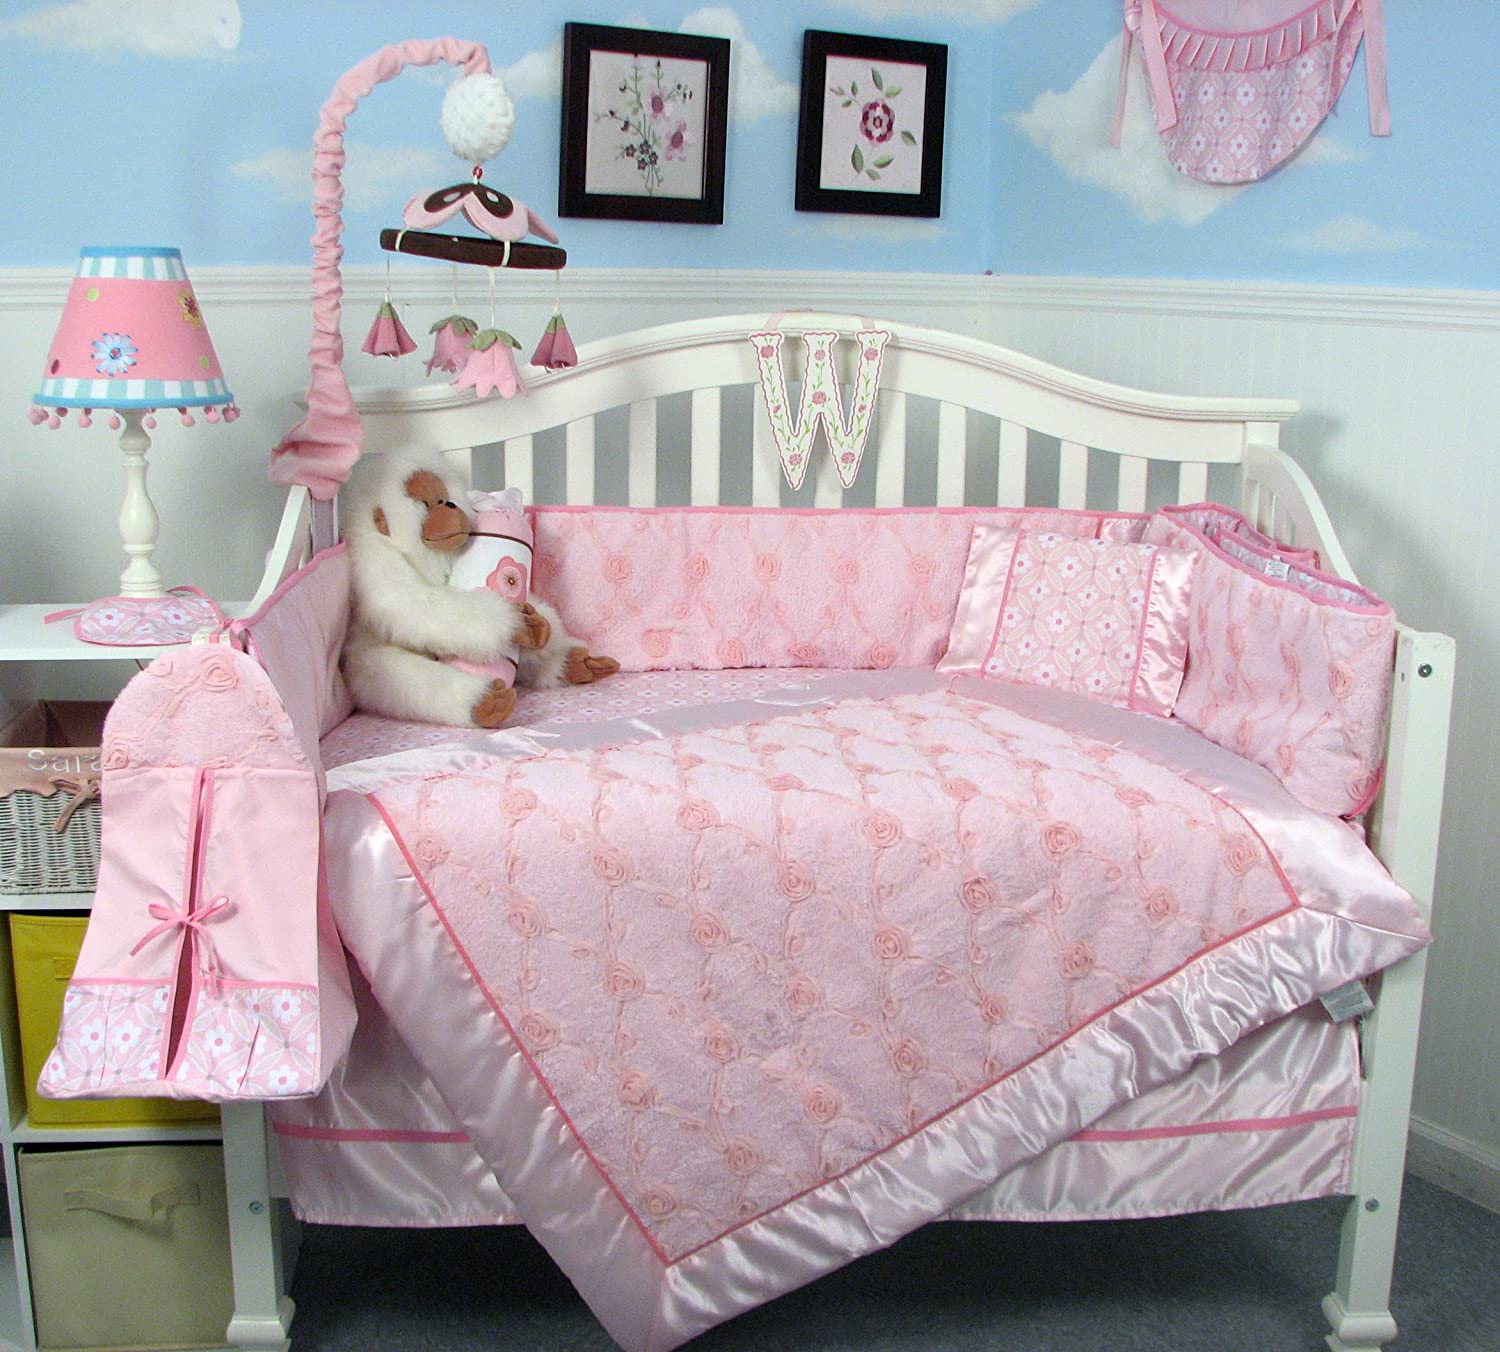 Soho Day At Zoo Baby Bedding Baby Bedding And Accessories